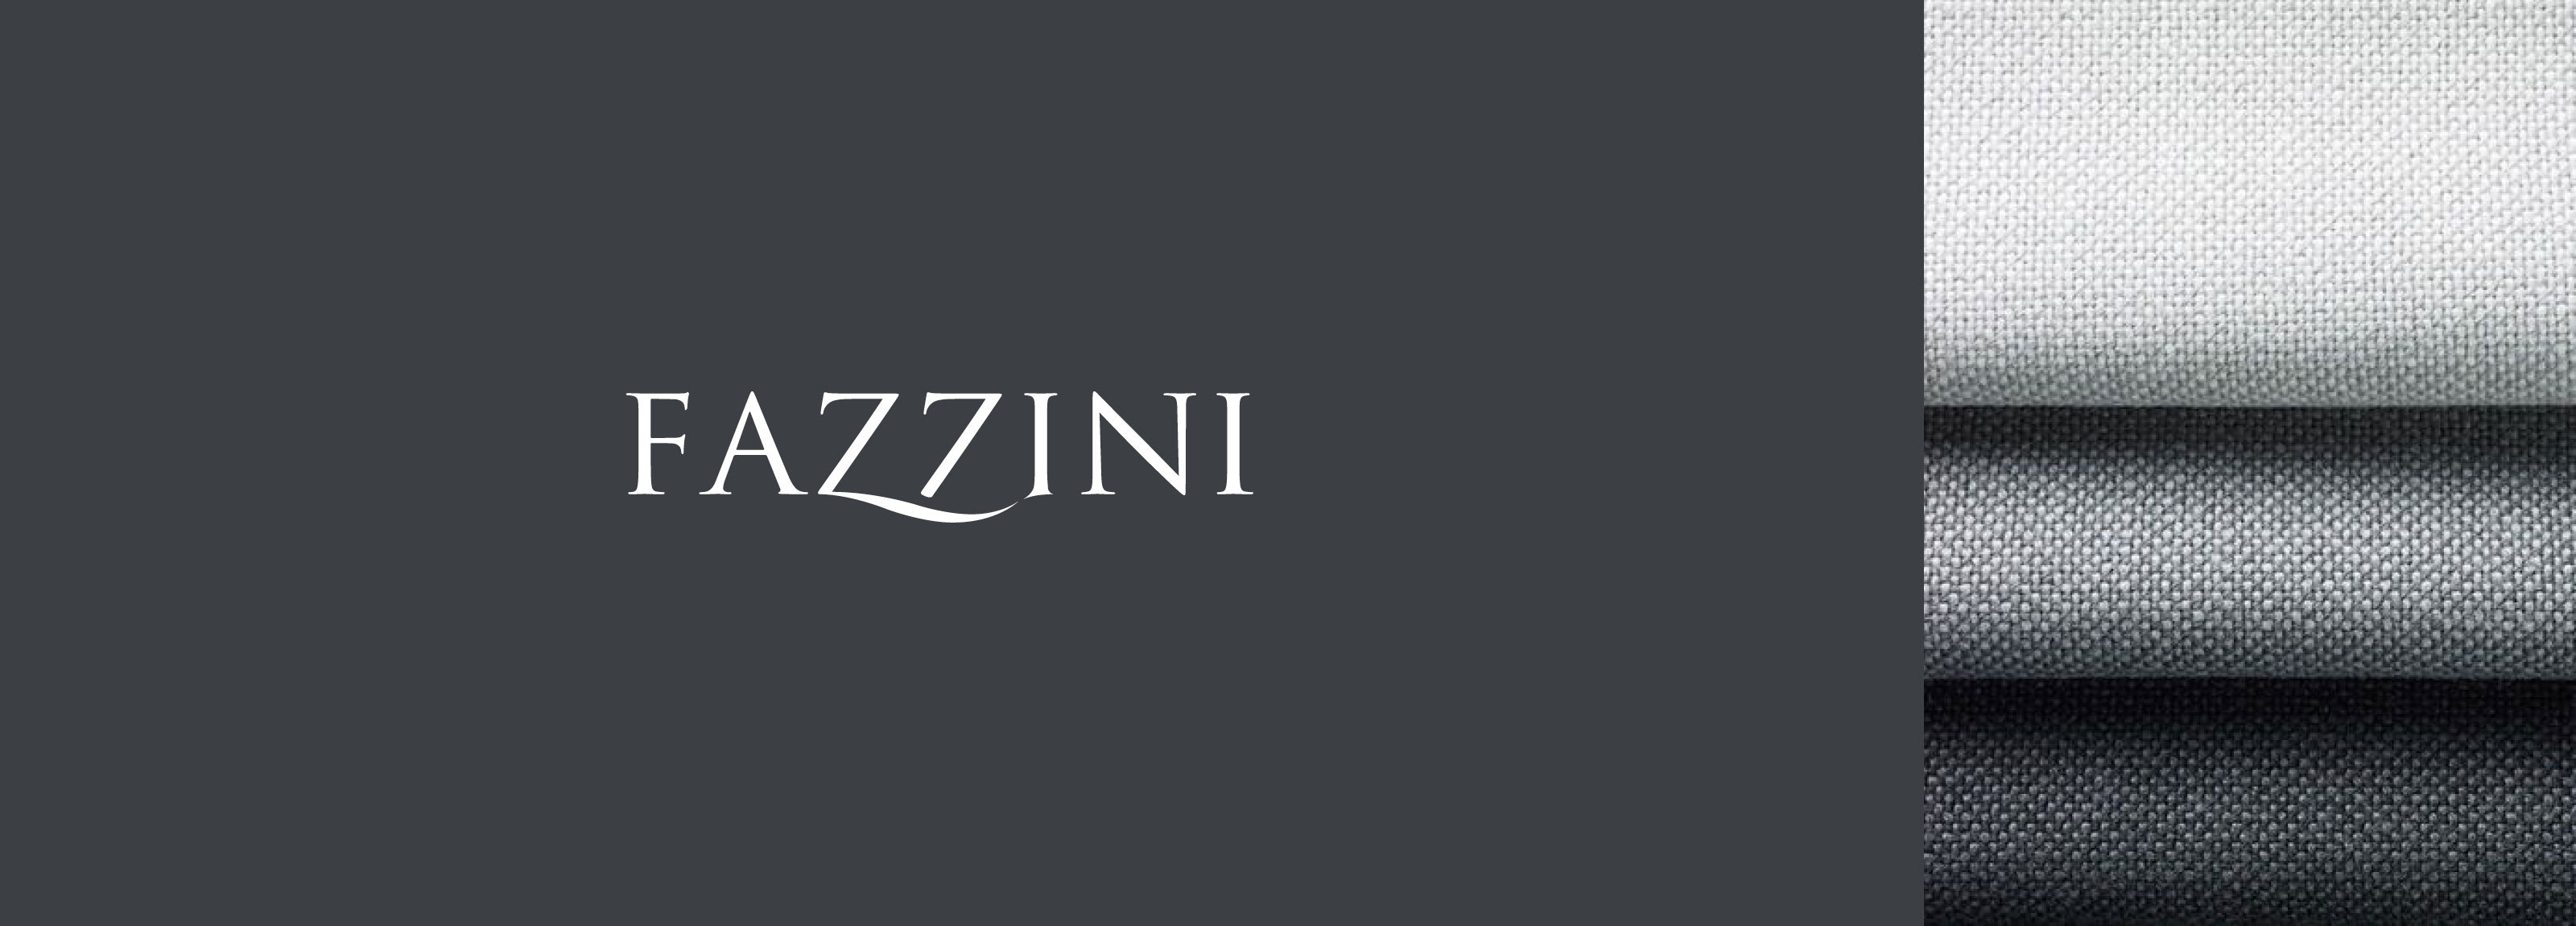 Hangar Design Group refreshed its image through a new logo design and visual identity of Fazzini